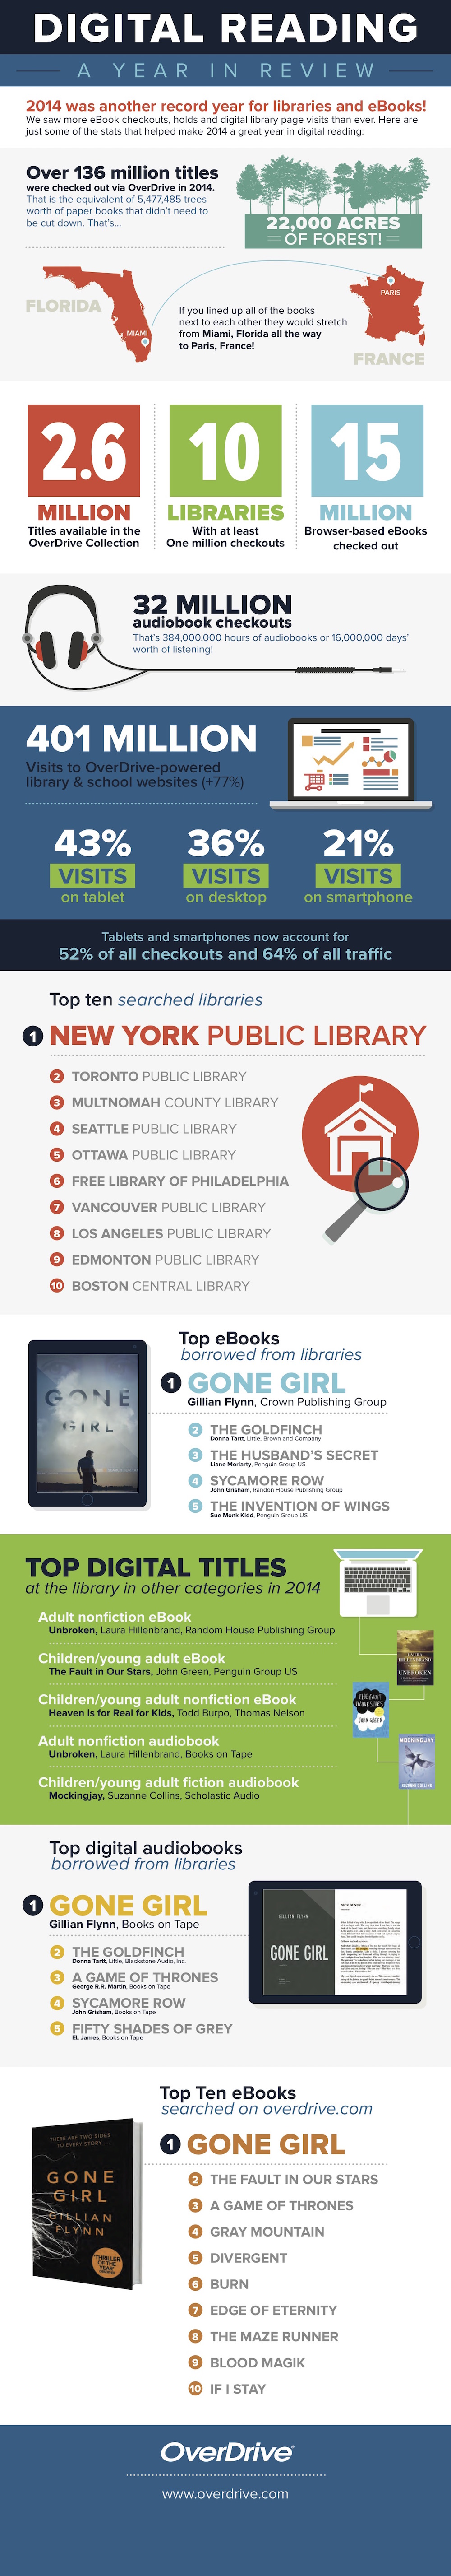 2014 was a record year for libraries and digital reading